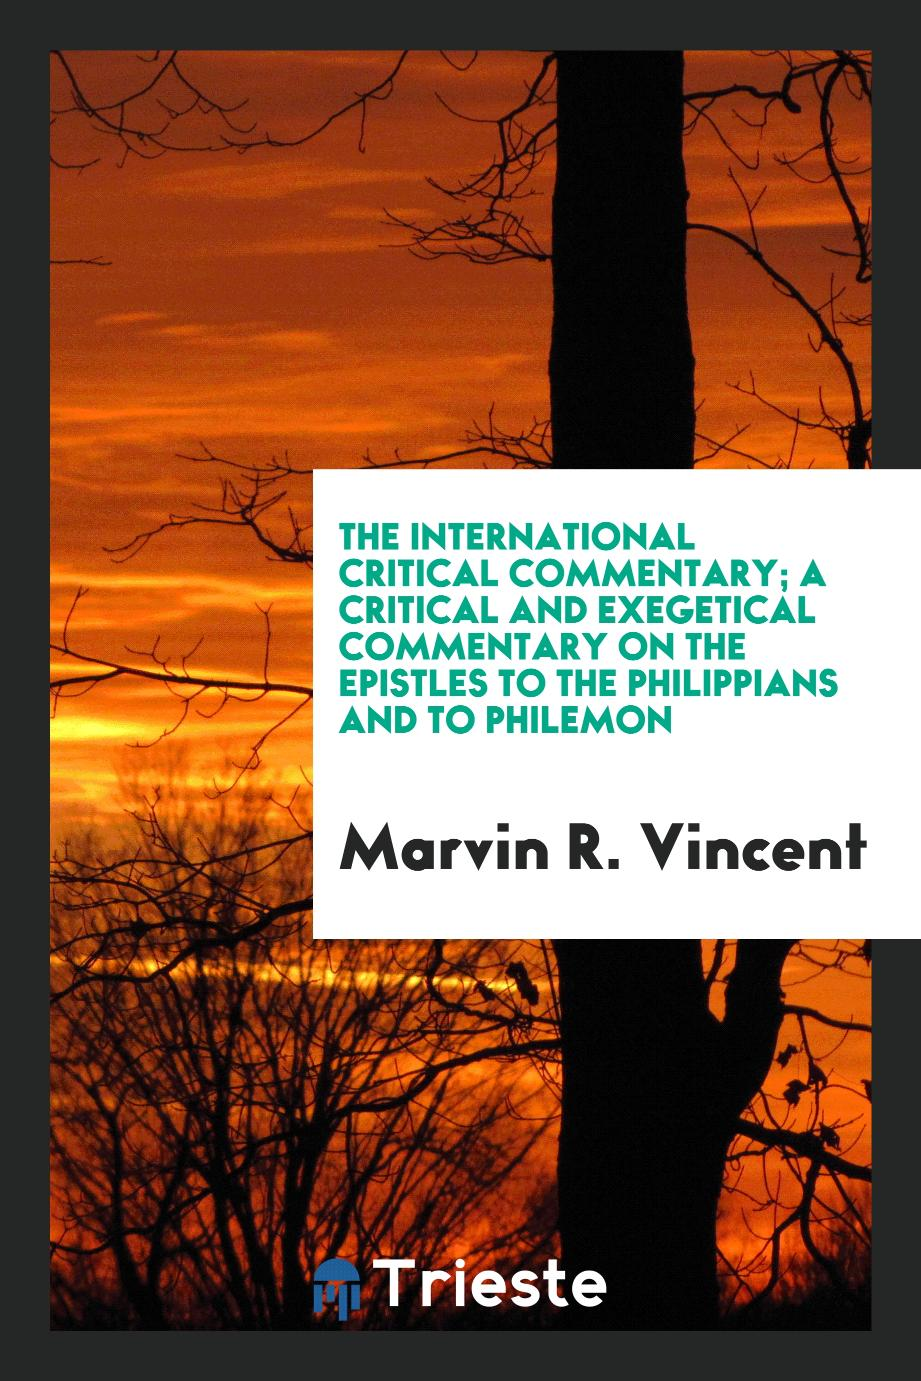 The International Critical Commentary; A Critical and Exegetical Commentary on the Epistles to the Philippians and to Philemon